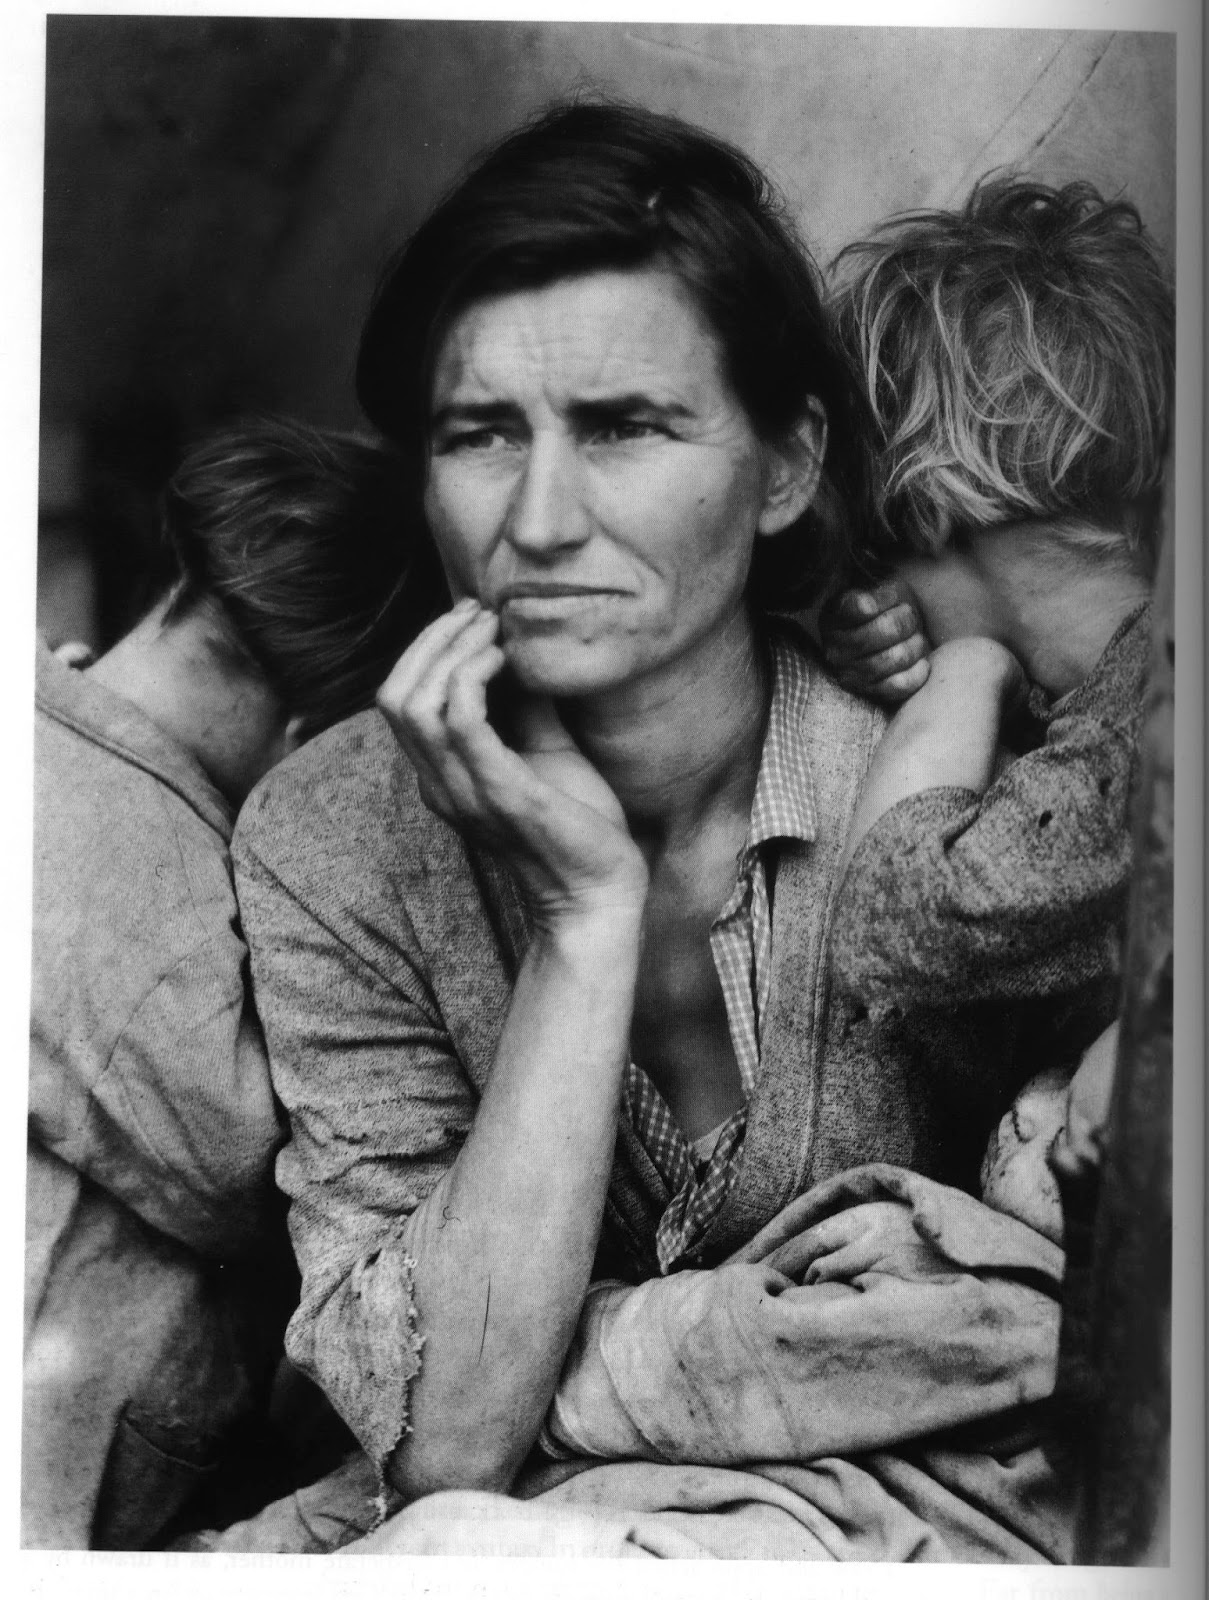 Artists of the Great Depression: November 2014